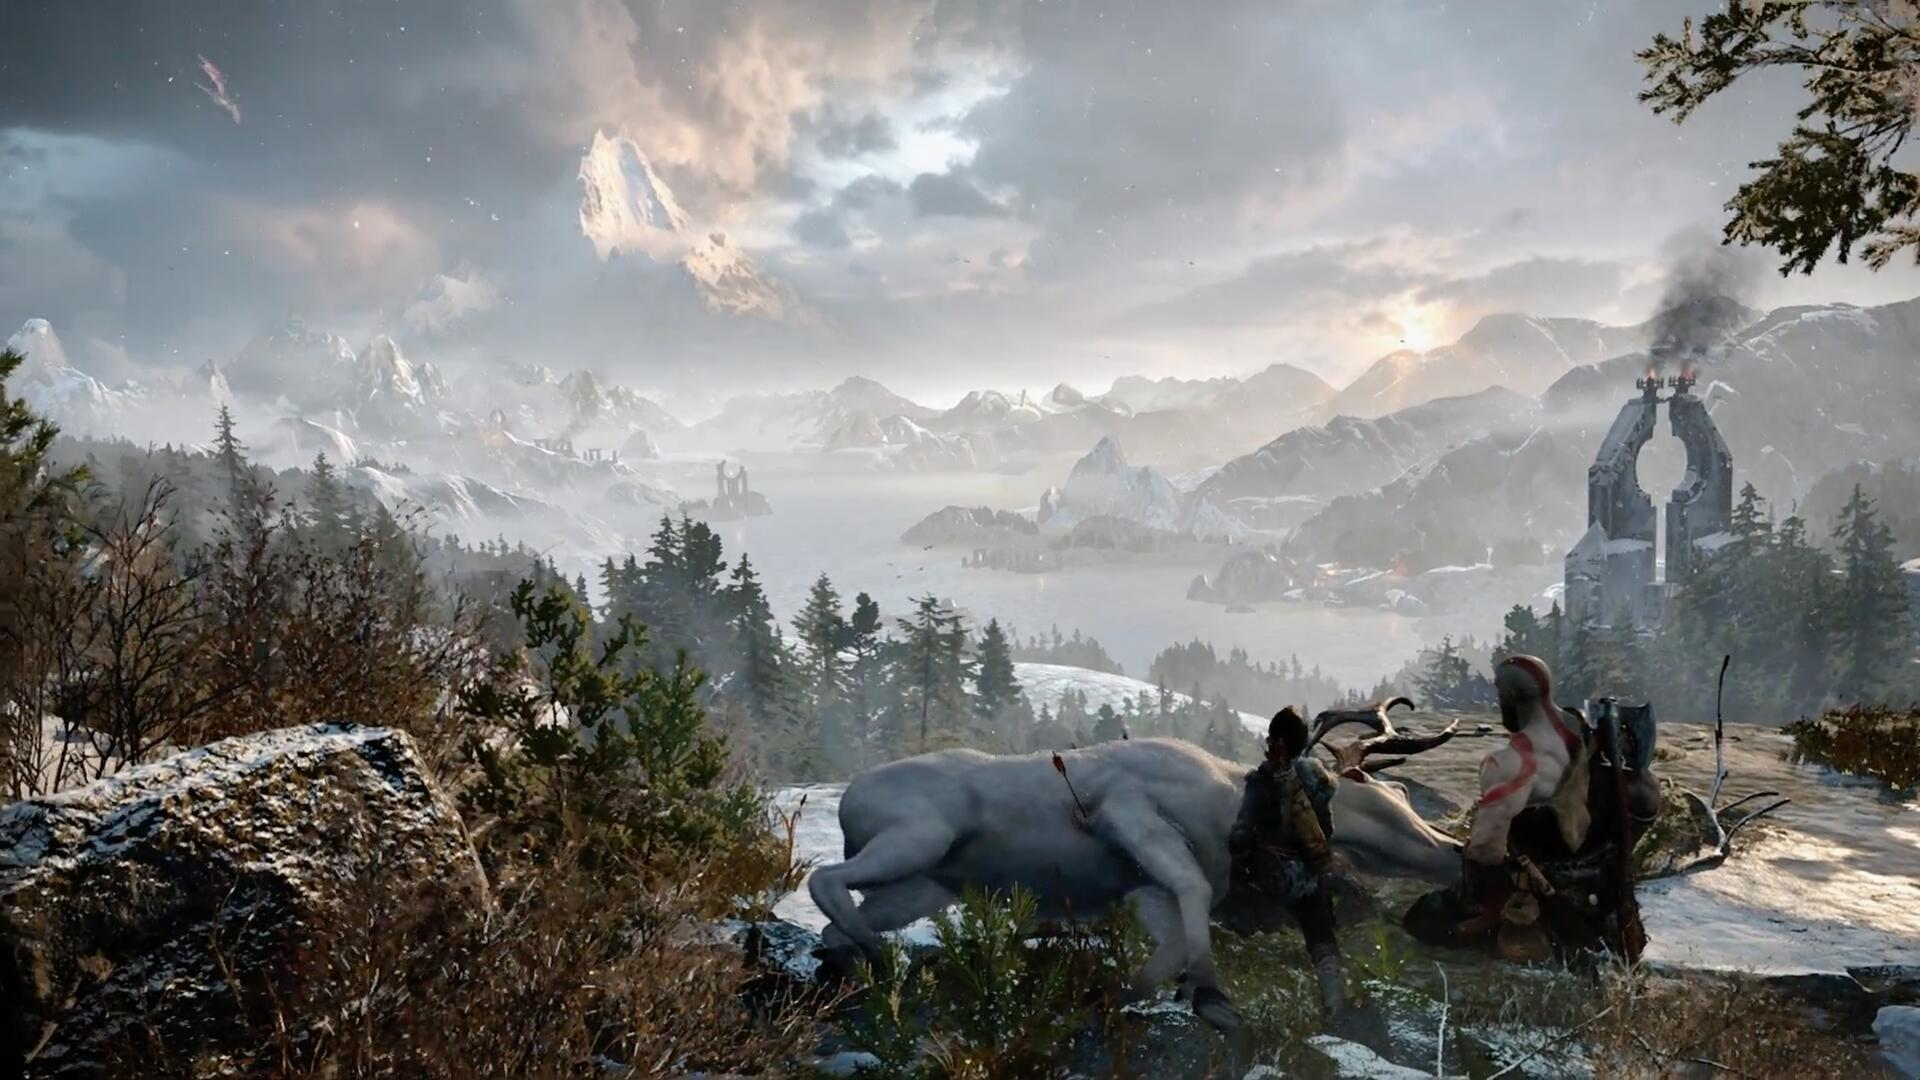 God of War PS4 Reviews, Release Date (out now), DLC, PS4 Pro Details, Game Length, Collector's Edition, Characters - Everything We Know